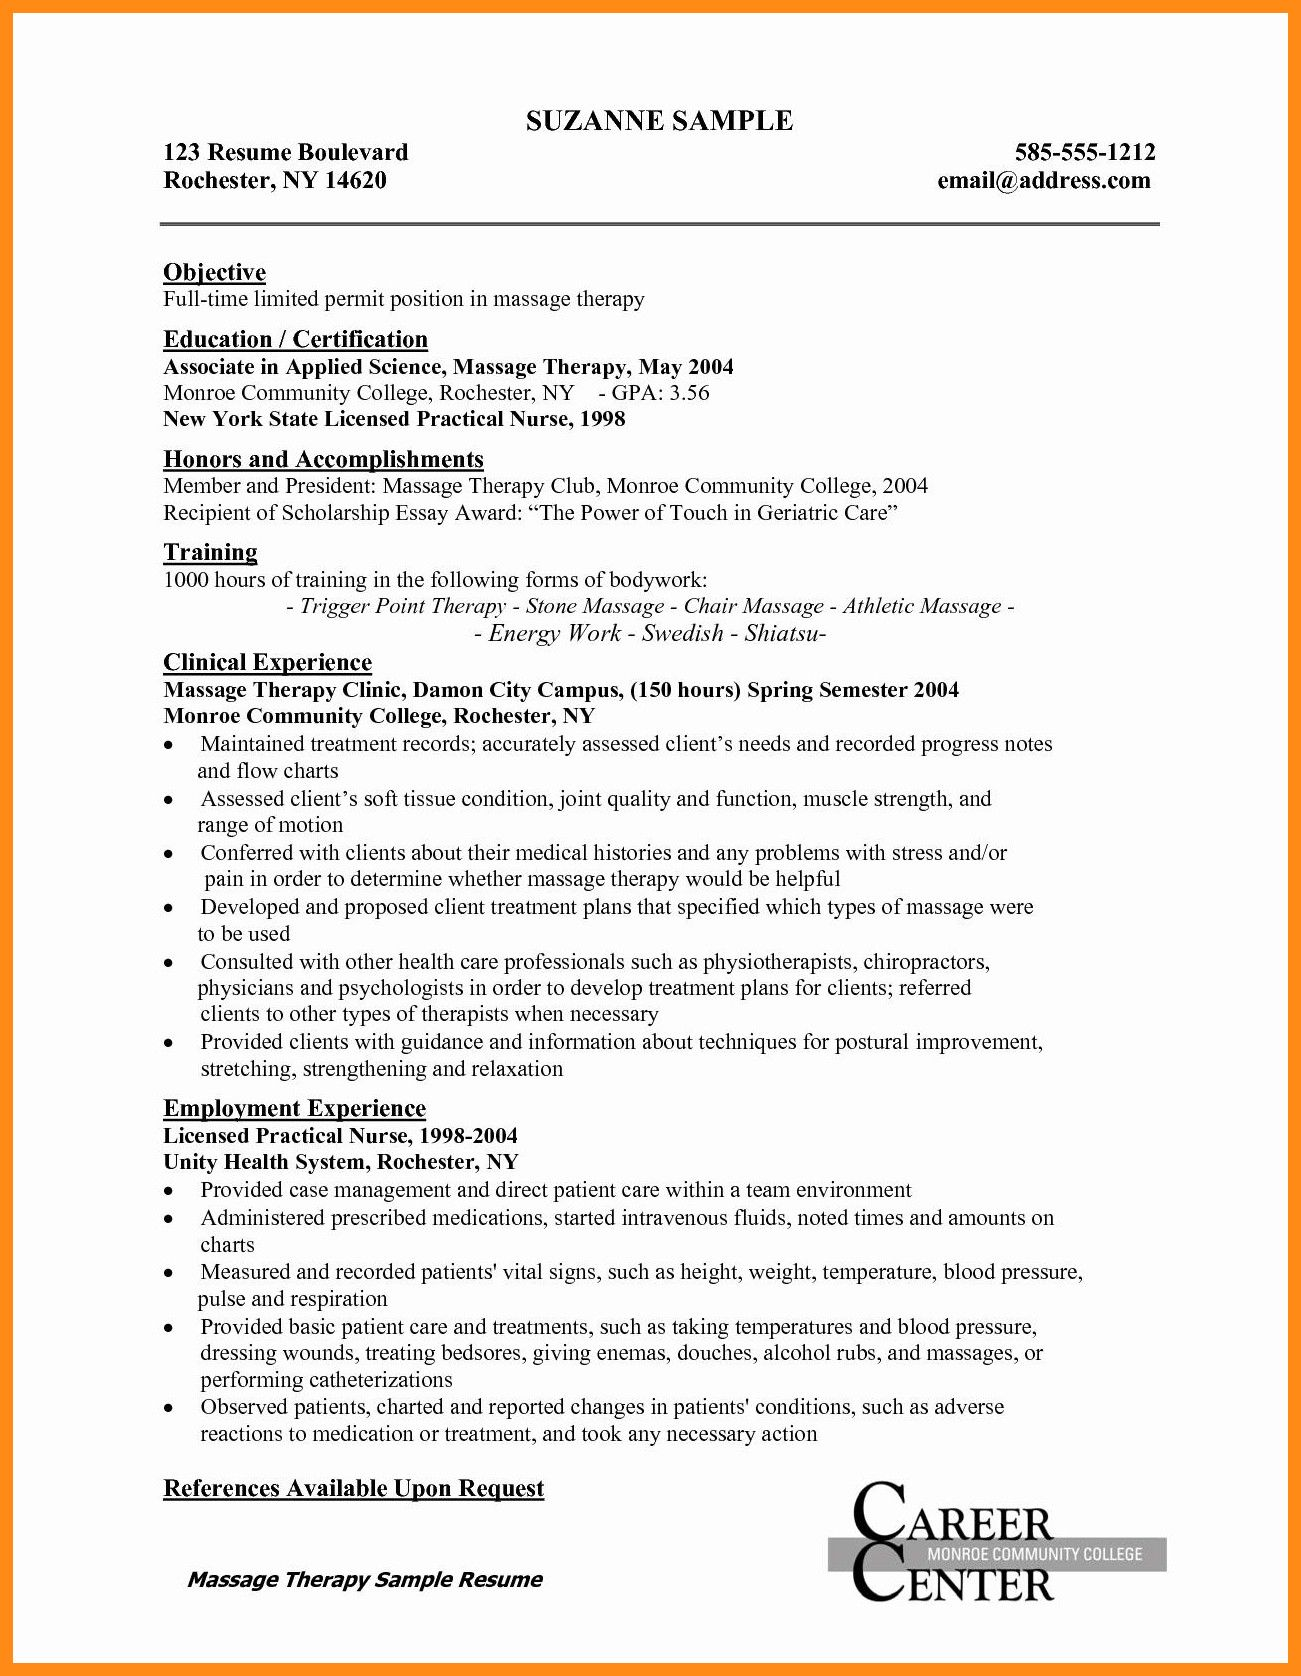 labor and delivery nurse resume sample of rn free templates job description for logistics Resume Labor And Delivery Nurse Job Description For Resume